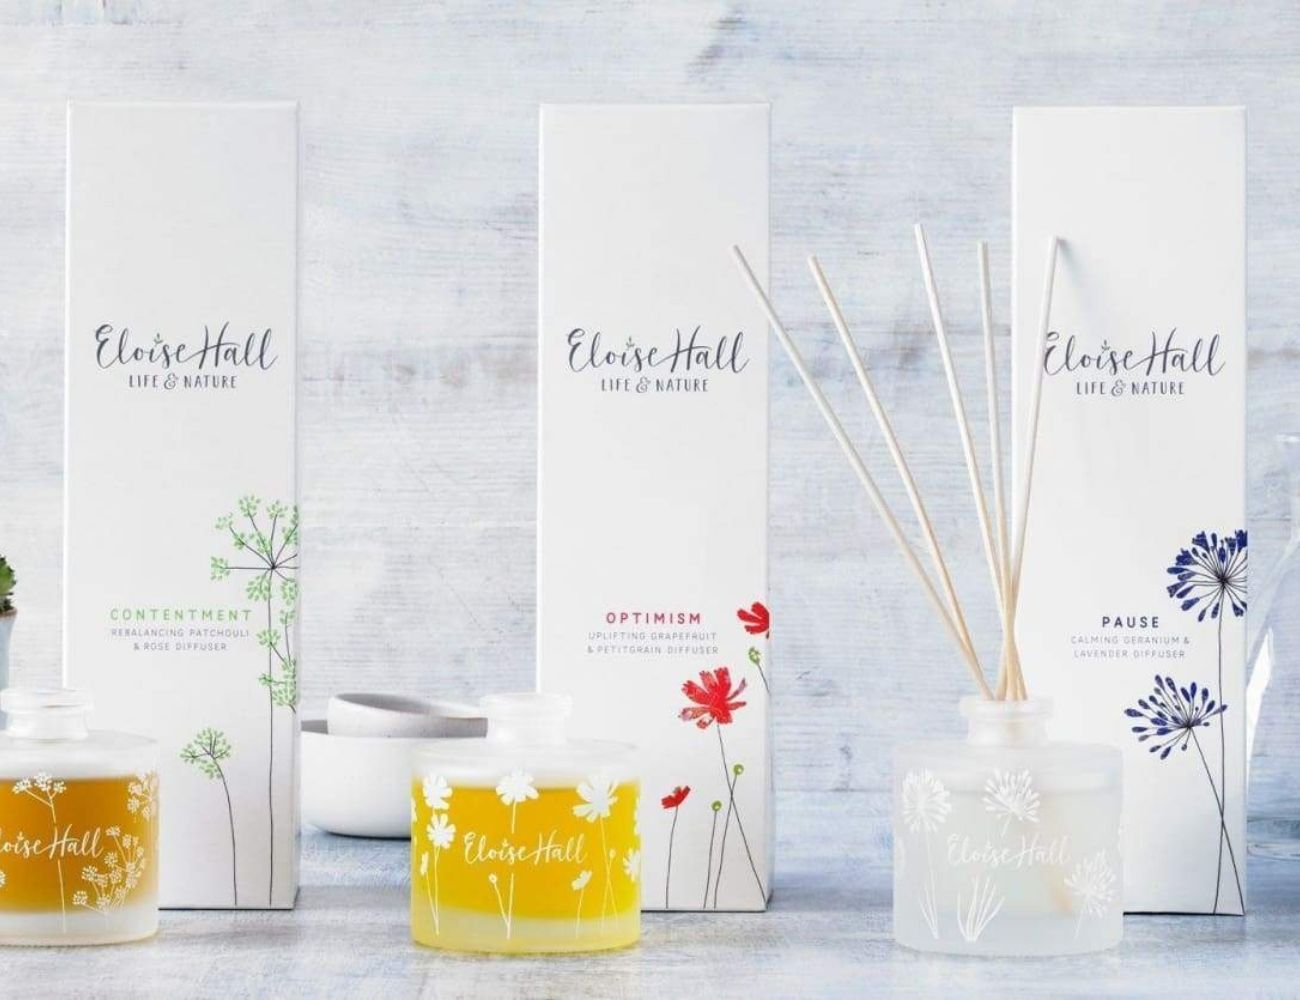 Eloise Hall is a brand with a passion for sustainability and trust with the consumer